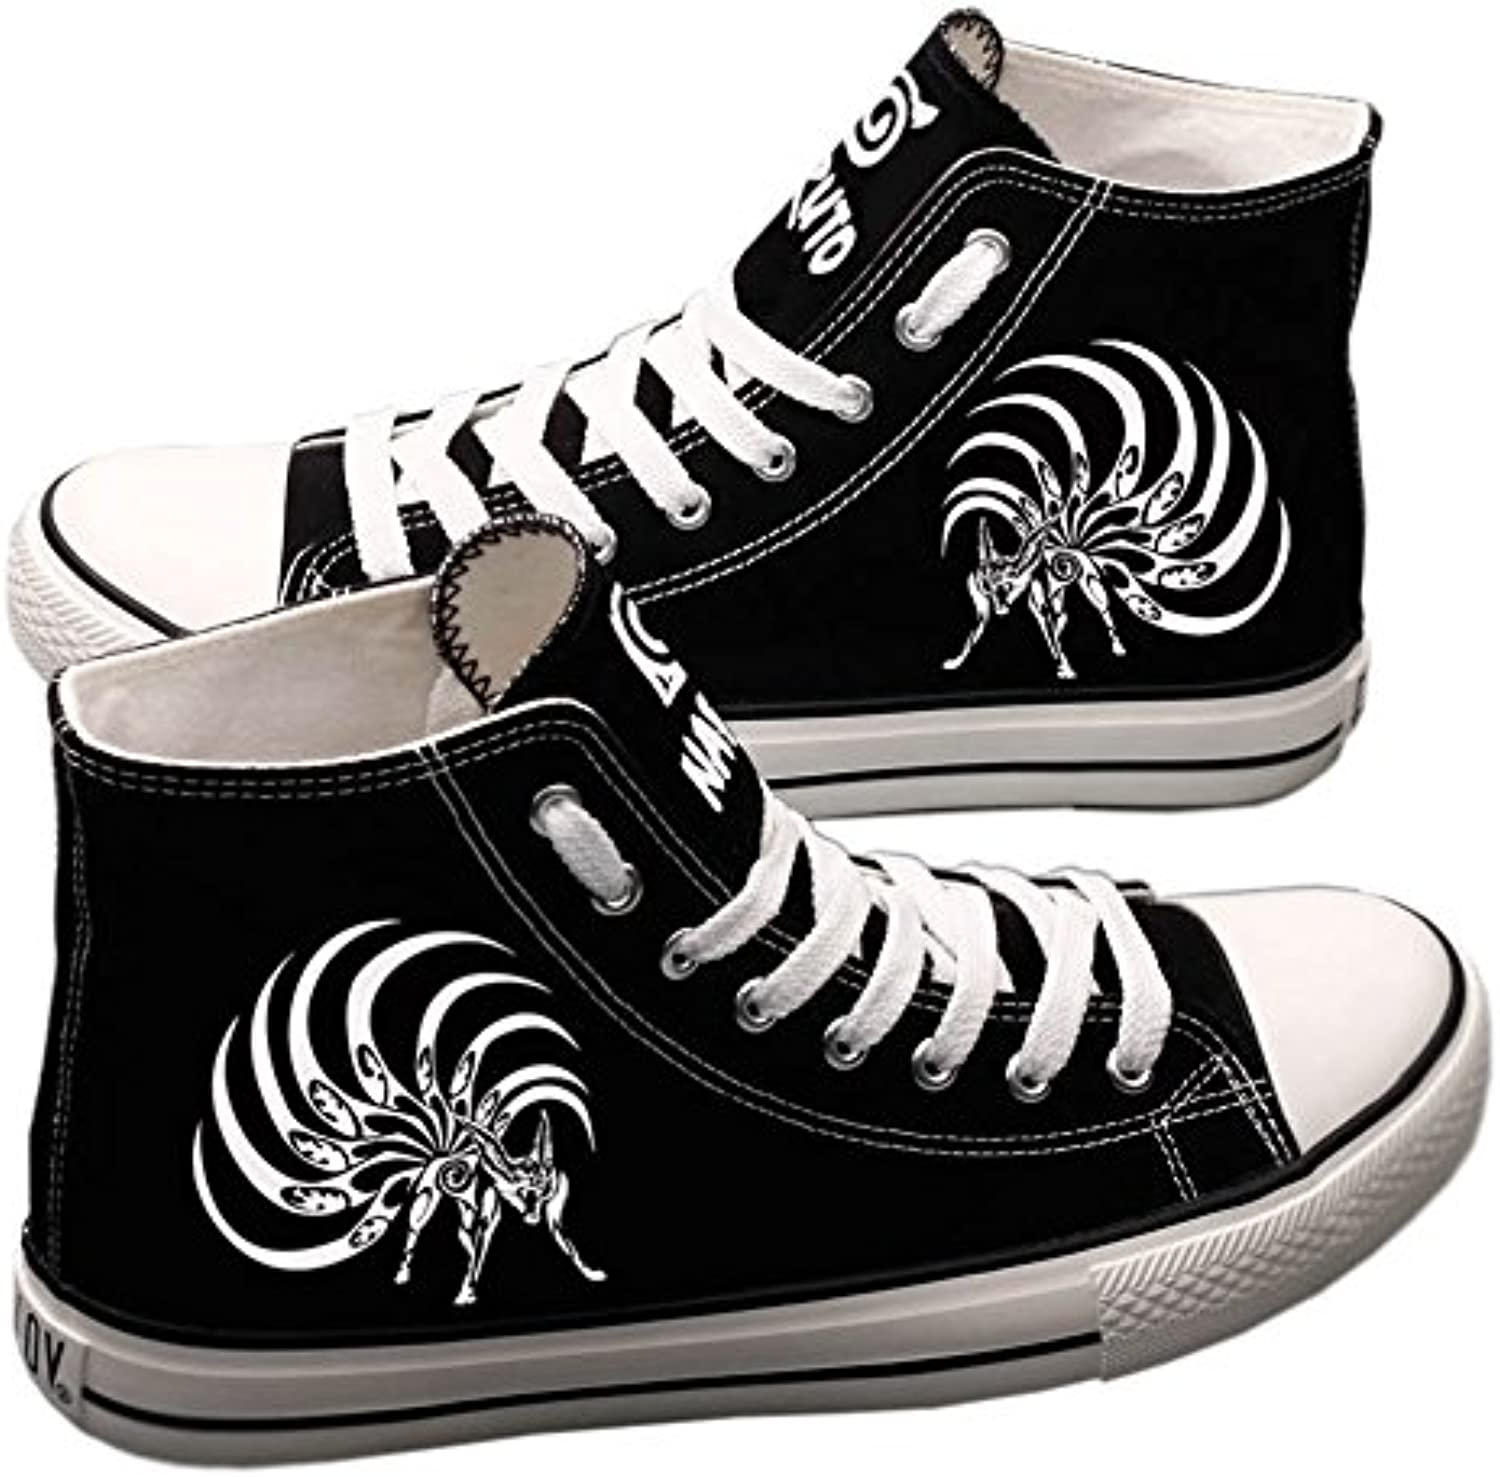 E_LOV Naruto Anime Kyubi Hand-Painted Canvas shoes High Top Sneakers Anime Painted Cosplay shoes for Women and Men Black